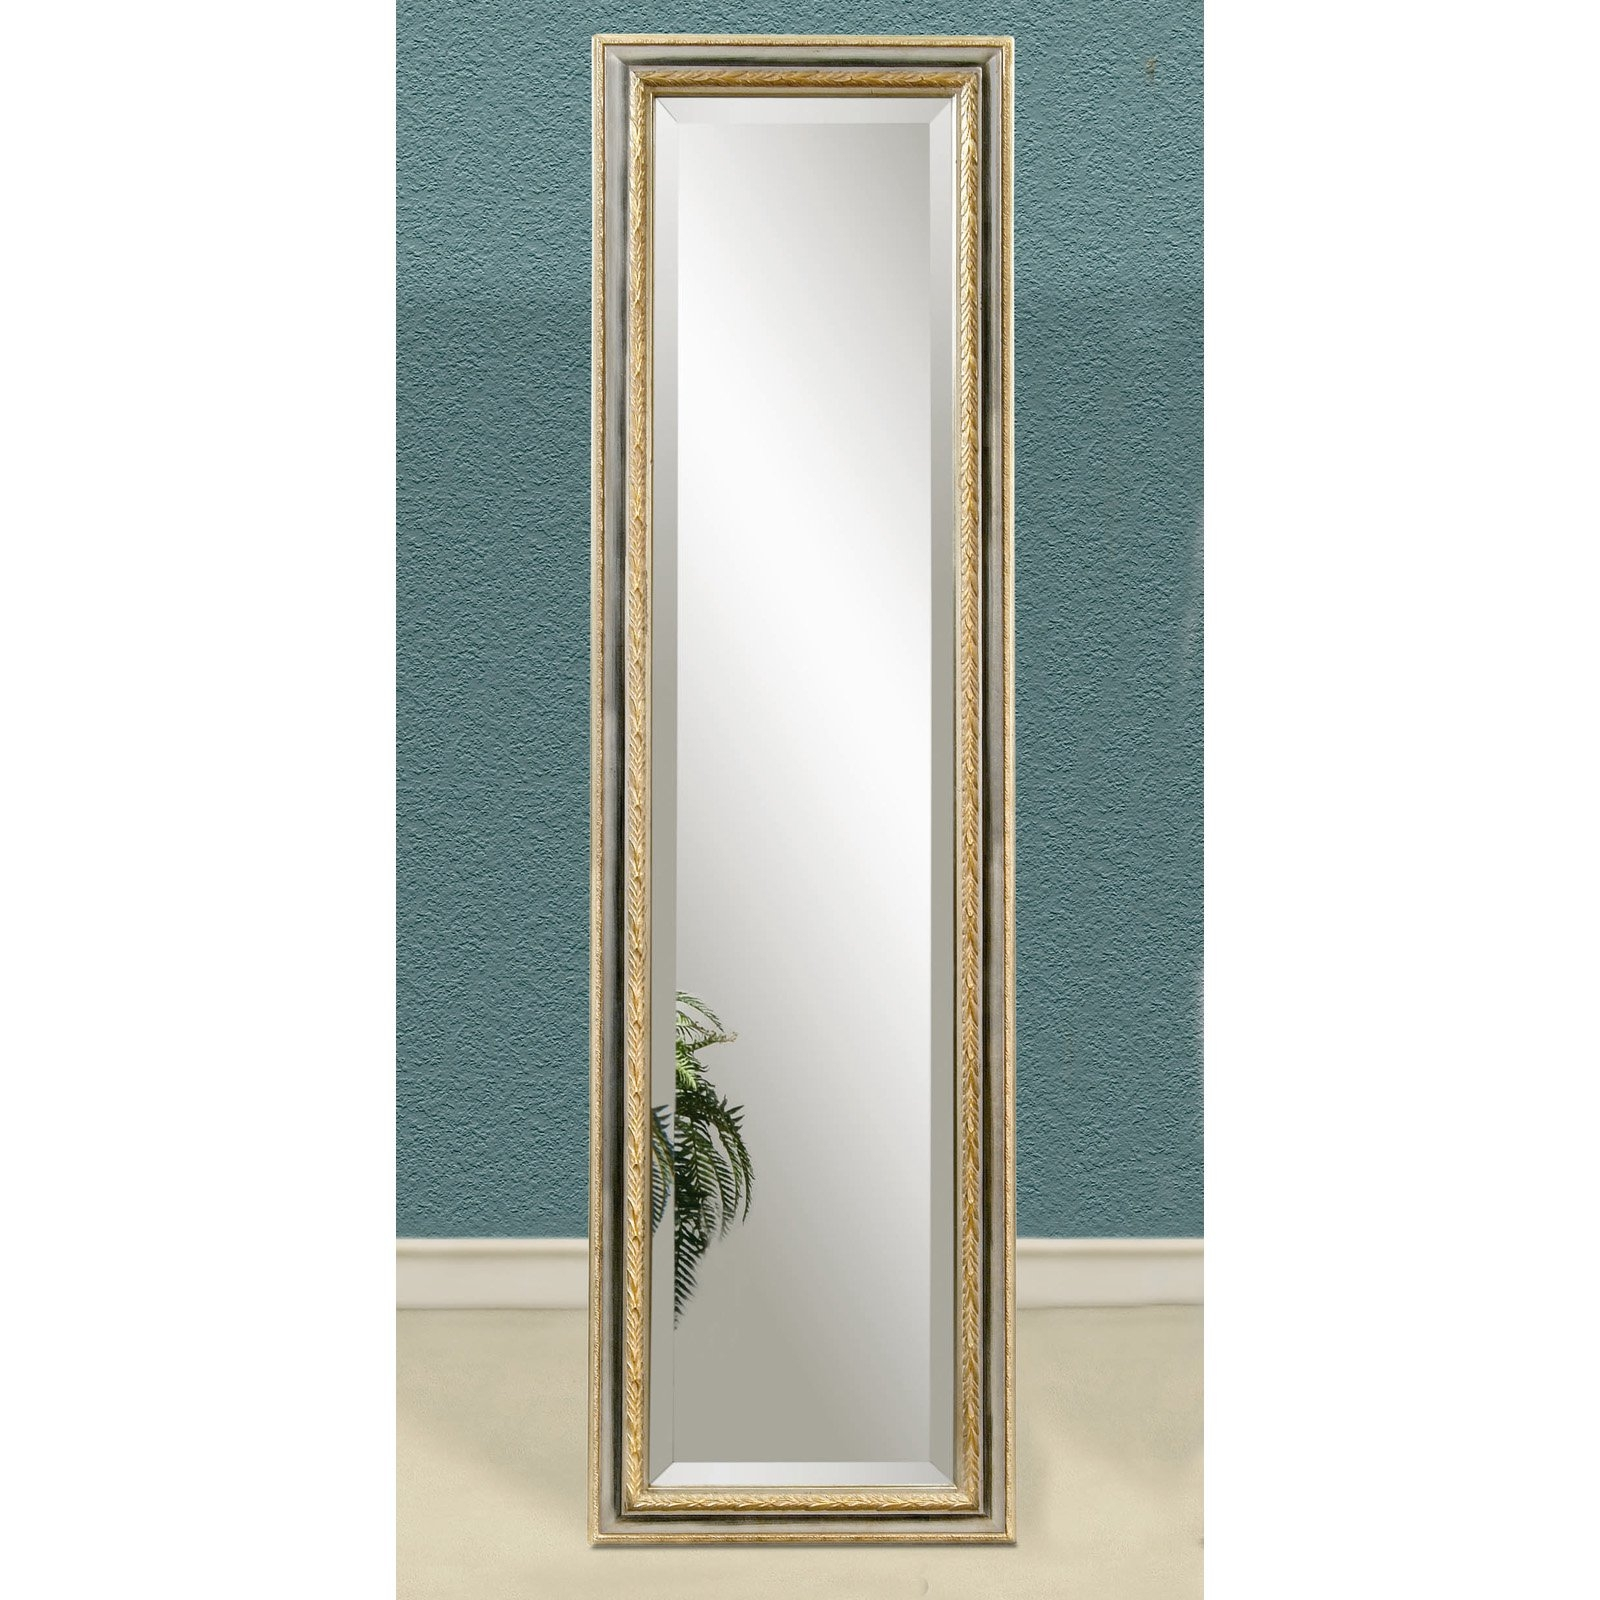 Bronze Gold Full Length Cheval Floor Mirror 17w X 63h In In Silver Cheval Mirror (Image 5 of 15)